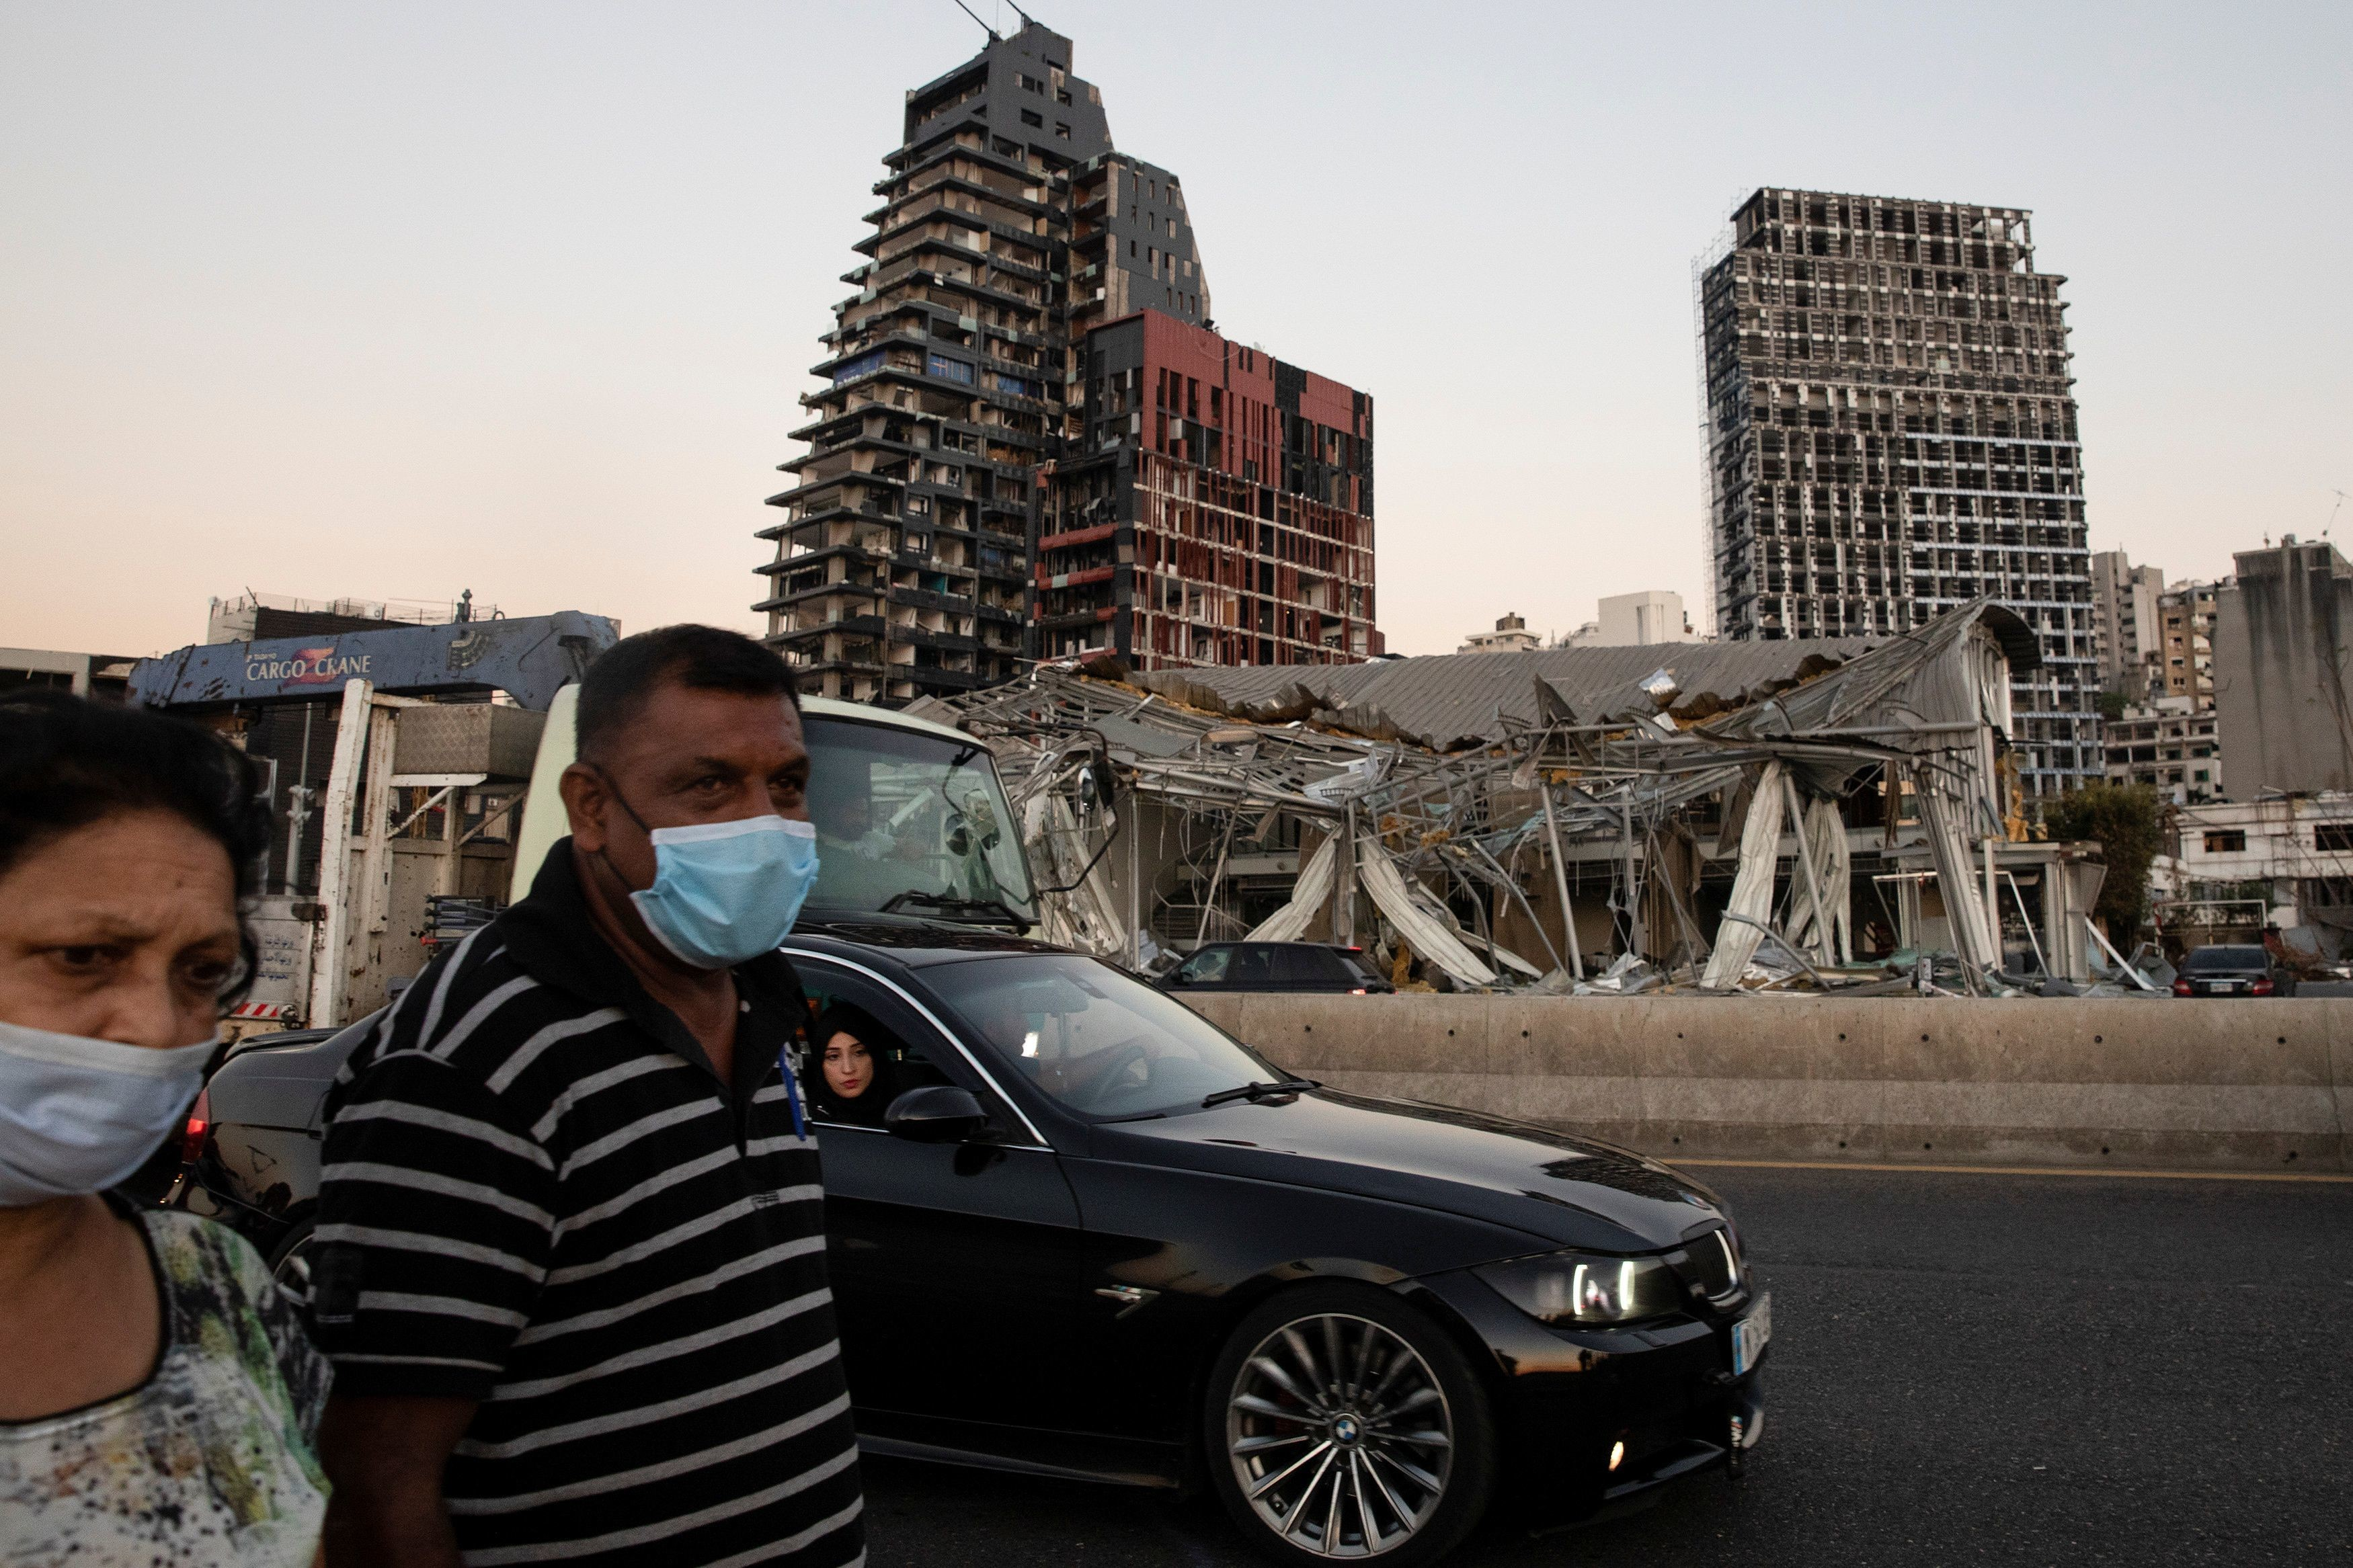 People pass by damaged buildings next to the port area, in the aftermath of a massive explosion, in Beirut, Lebanon, August 16, 2020. REUTERS/Alkis Konstantinidis - RC26FI9BKACH